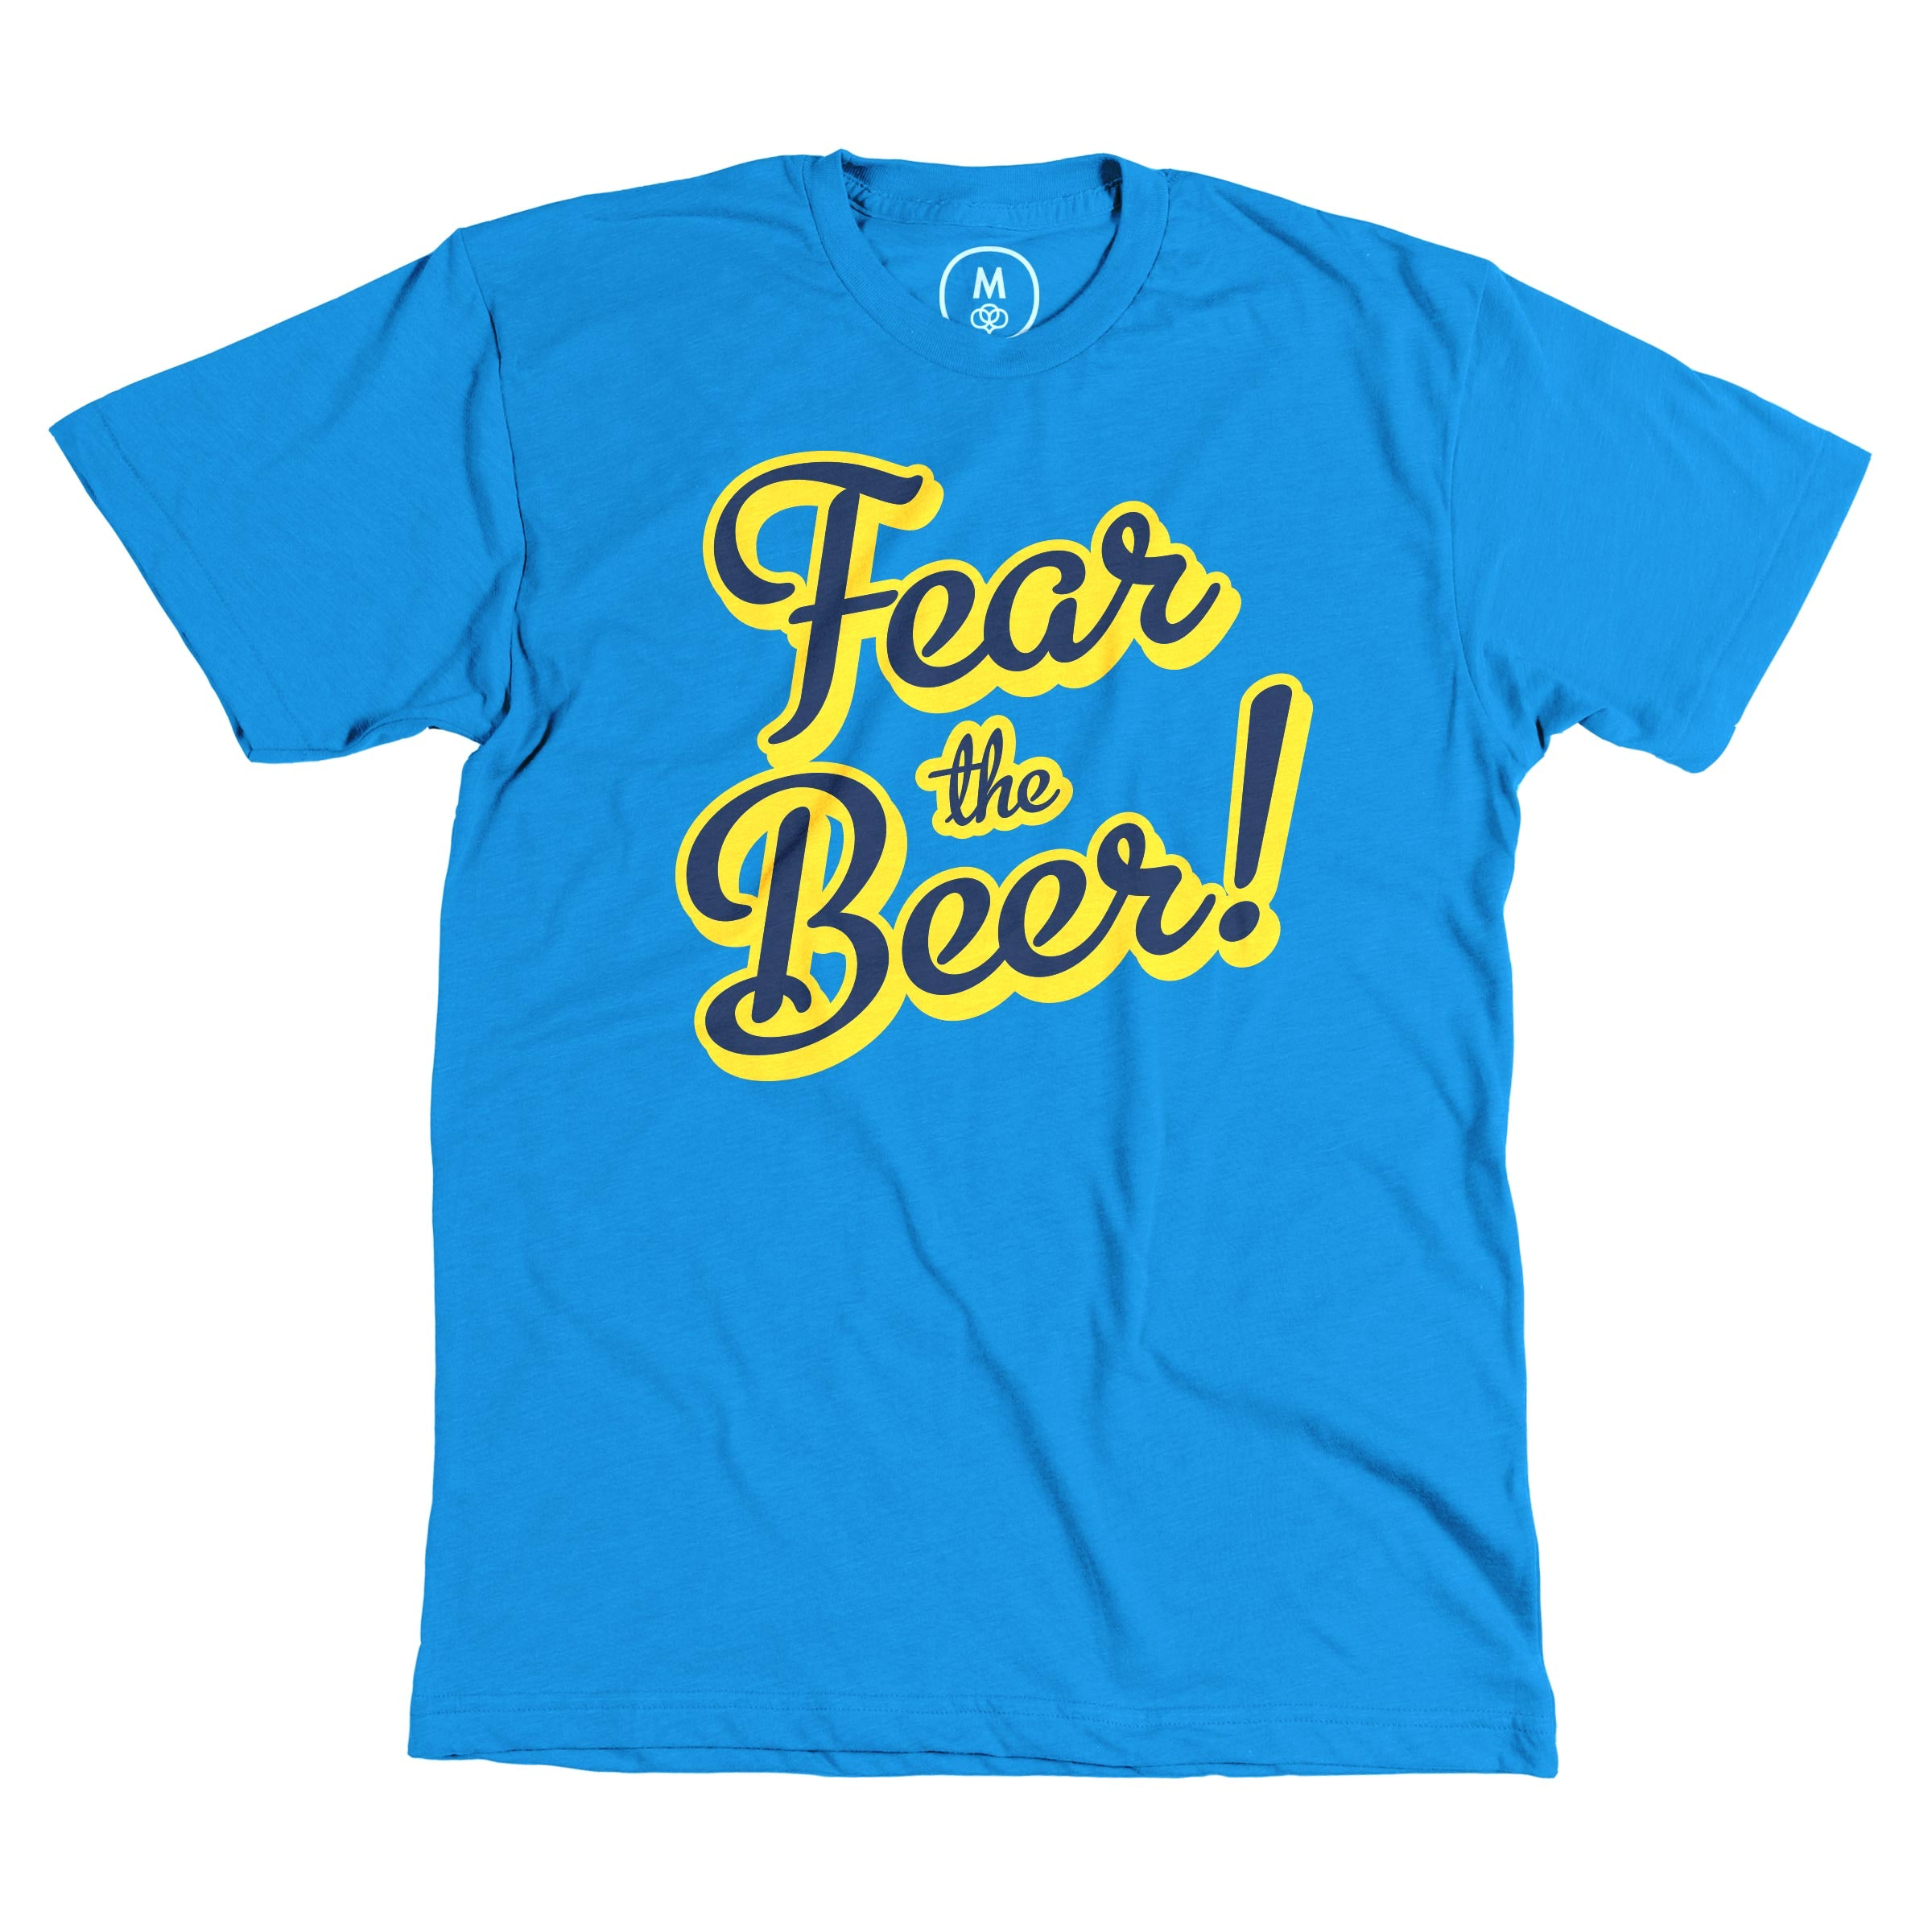 Fear the Beer! His